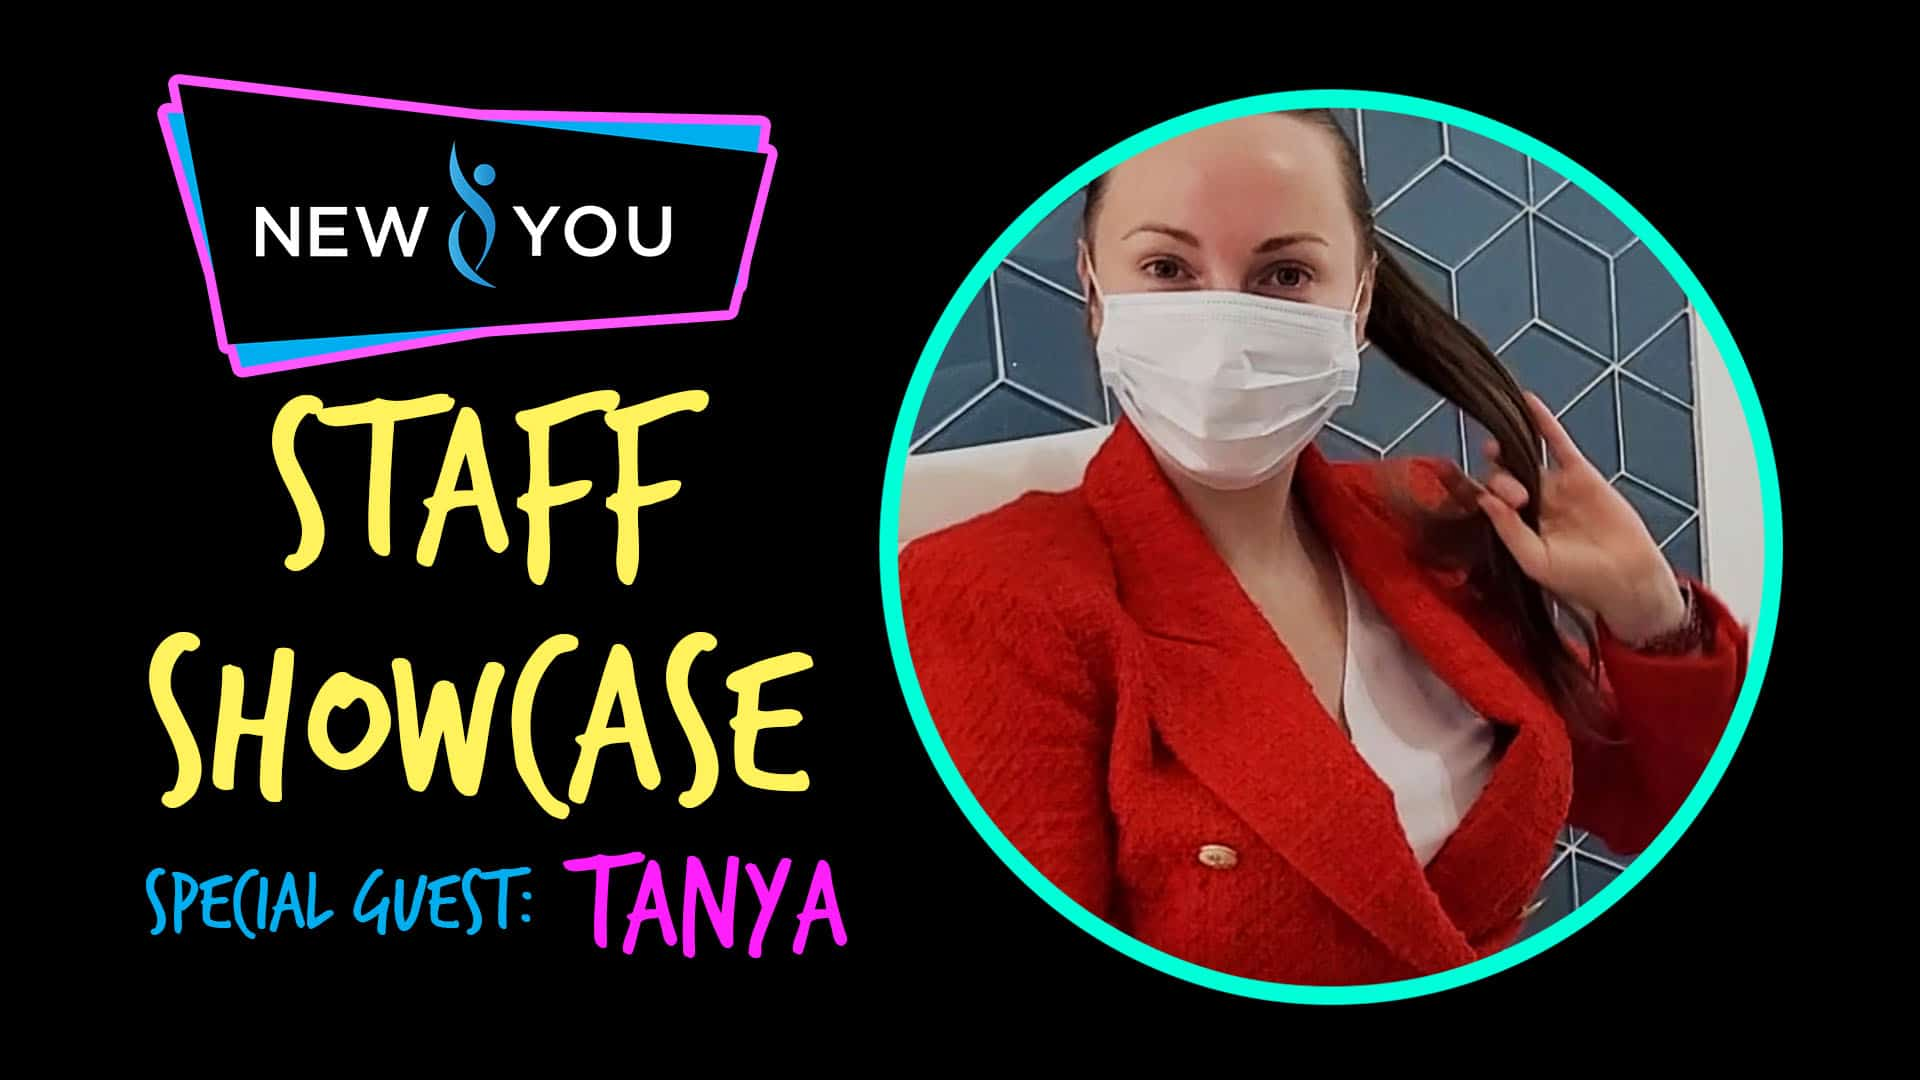 VIDEO: NEW YOU Staff Showcase (Featuring Tanya)